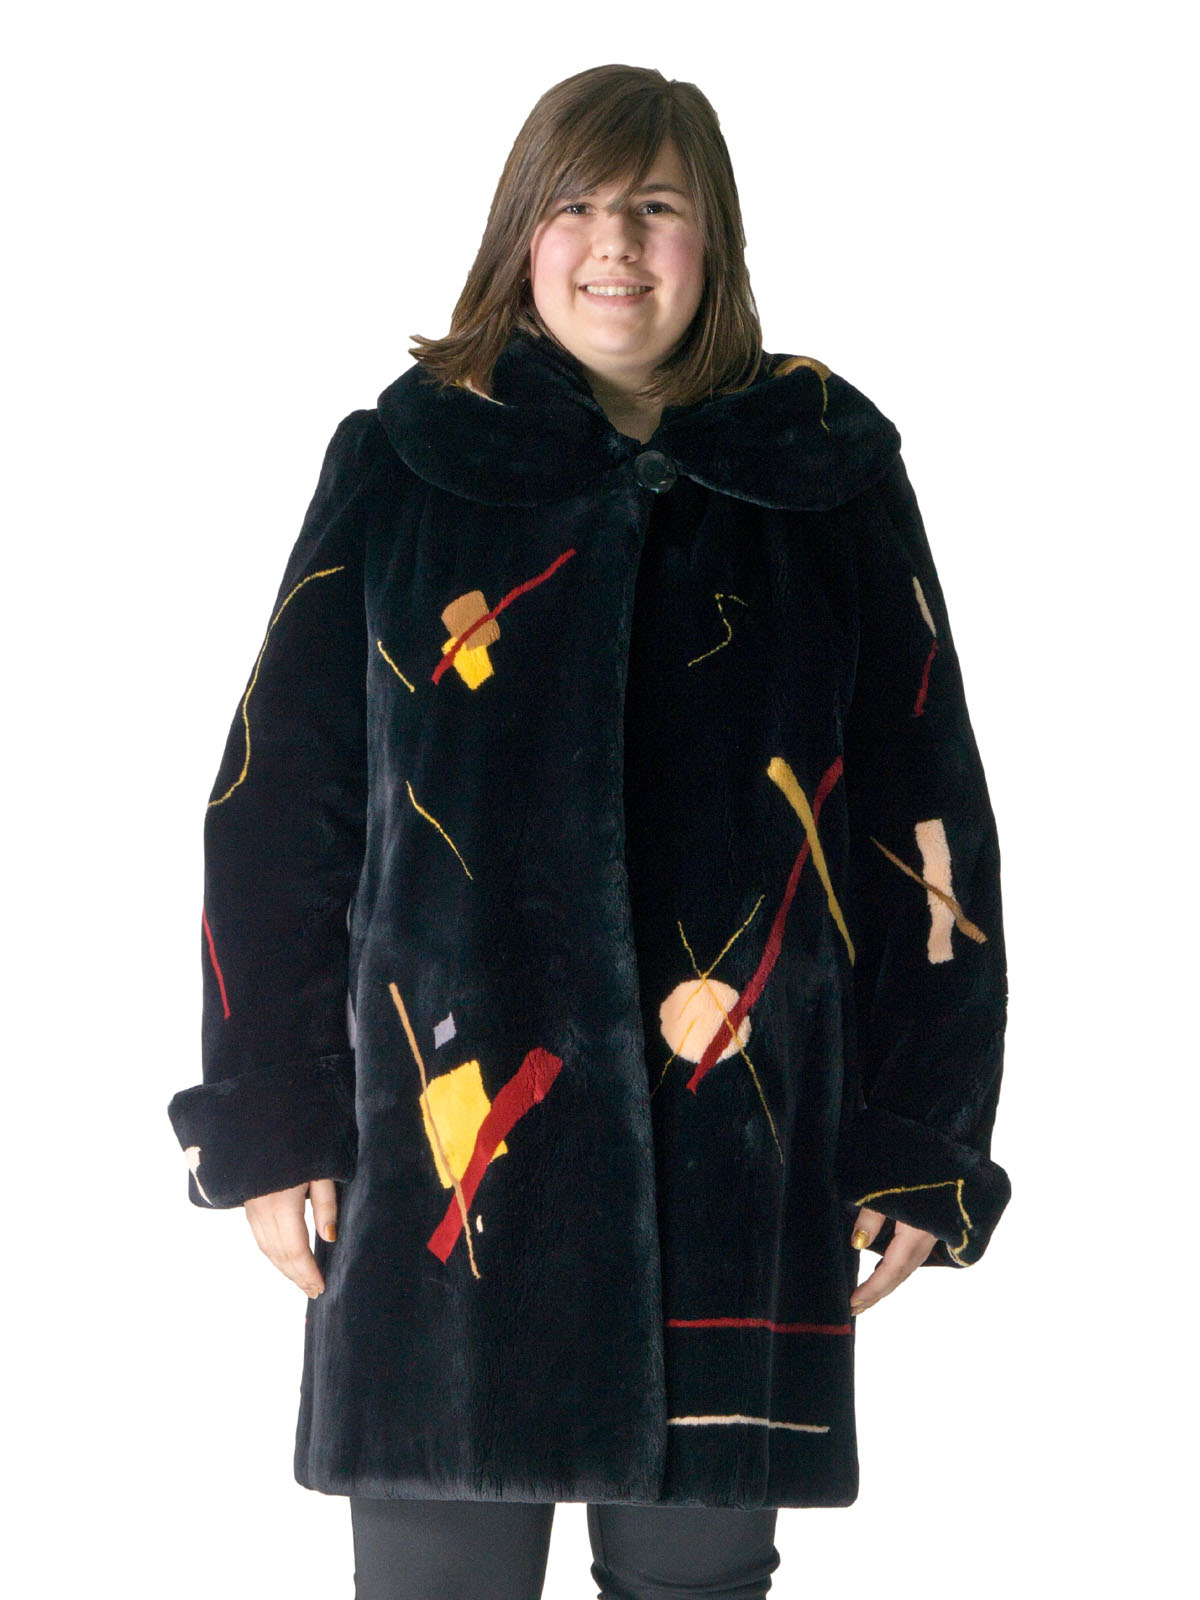 NEW Black Sheared Beaver Coat with Multicolor Abstract Design